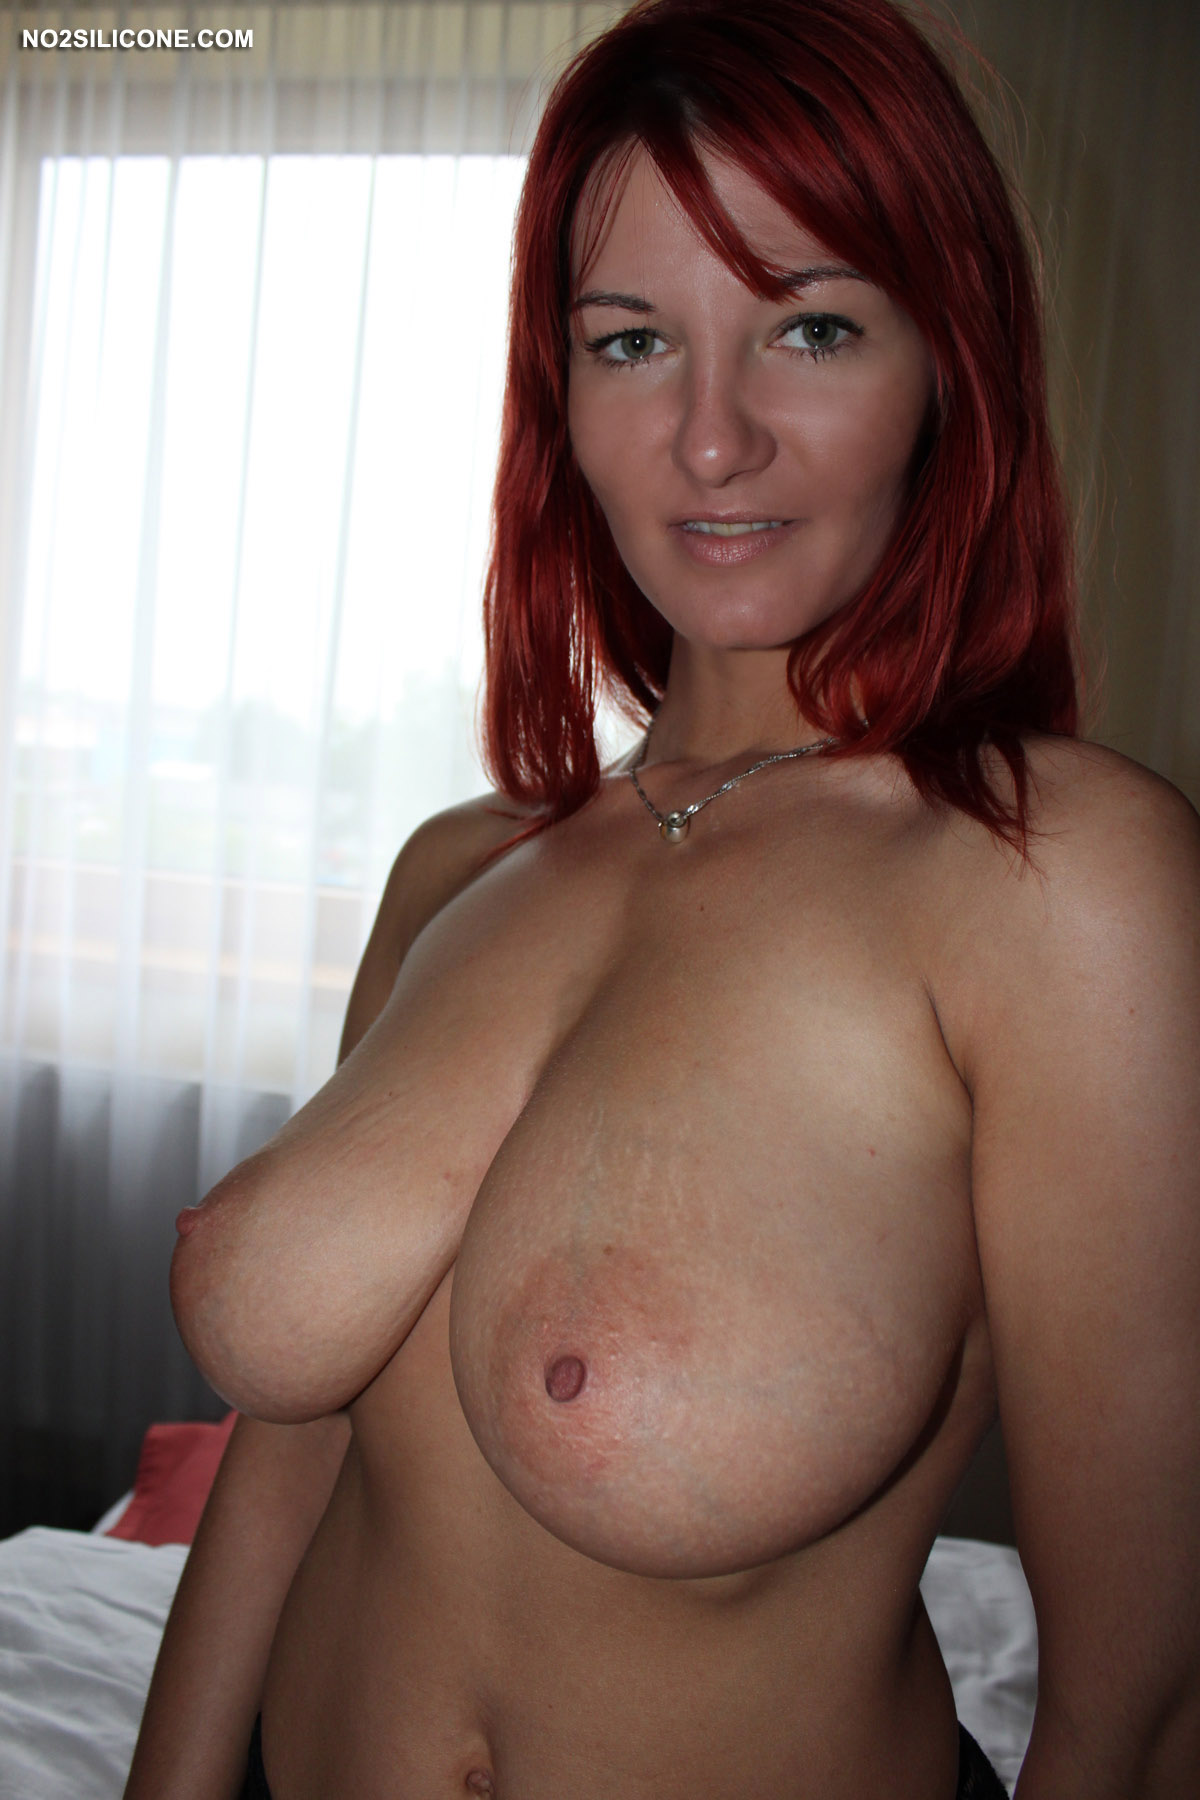 Bubbly redhead shows her body in detail